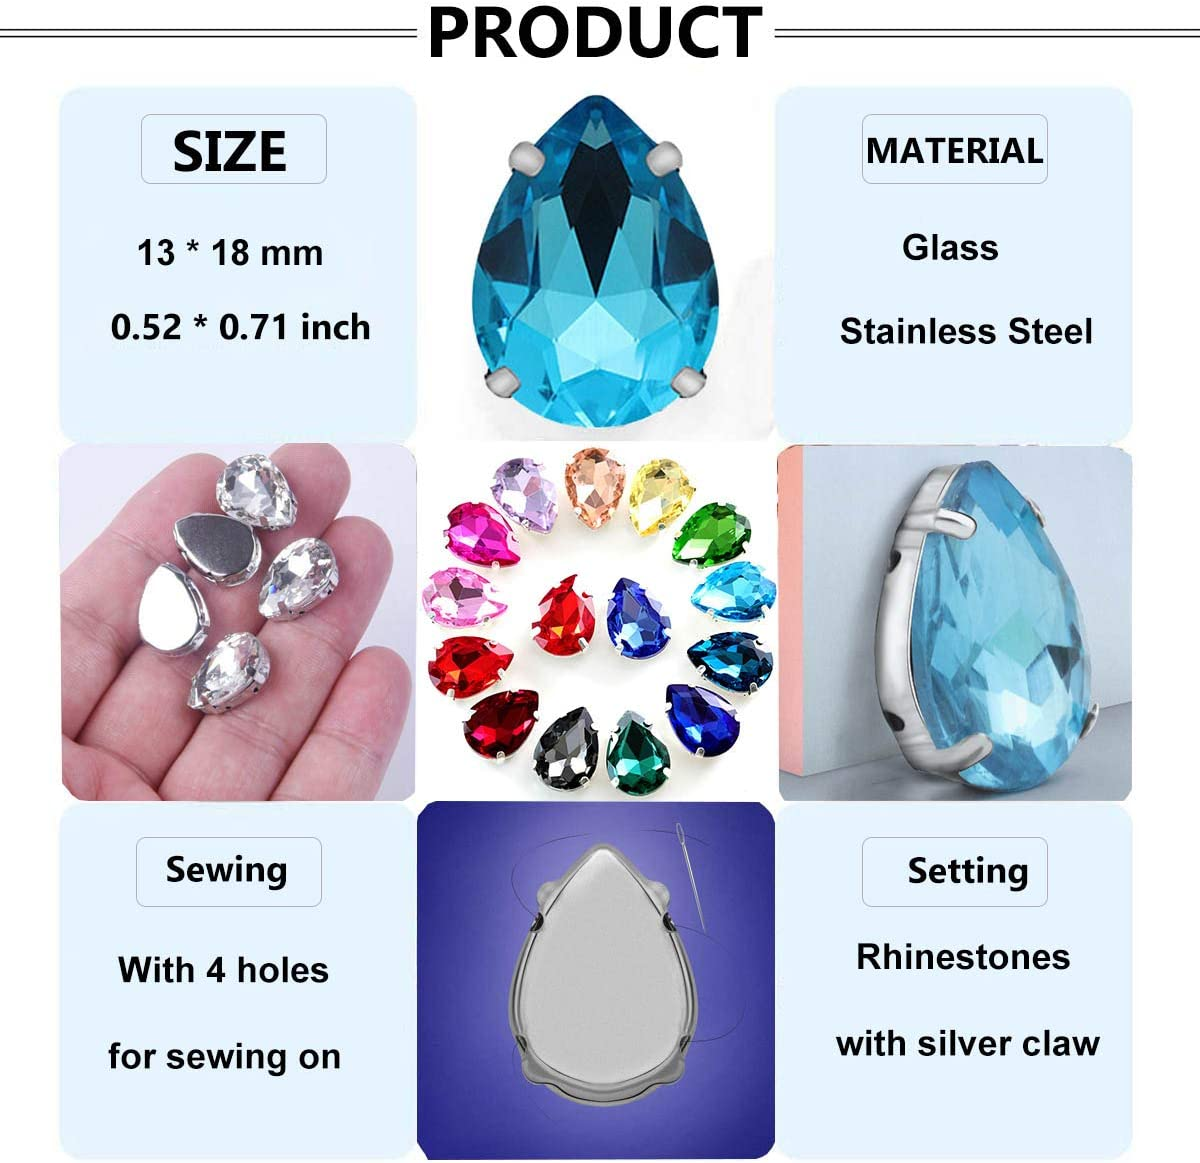 30pcs New Fashion Style Red Sew on Rhinestones Resin Crystals Water Drop Shape 1630mm Flatback 2 Holes Big Gem Stone